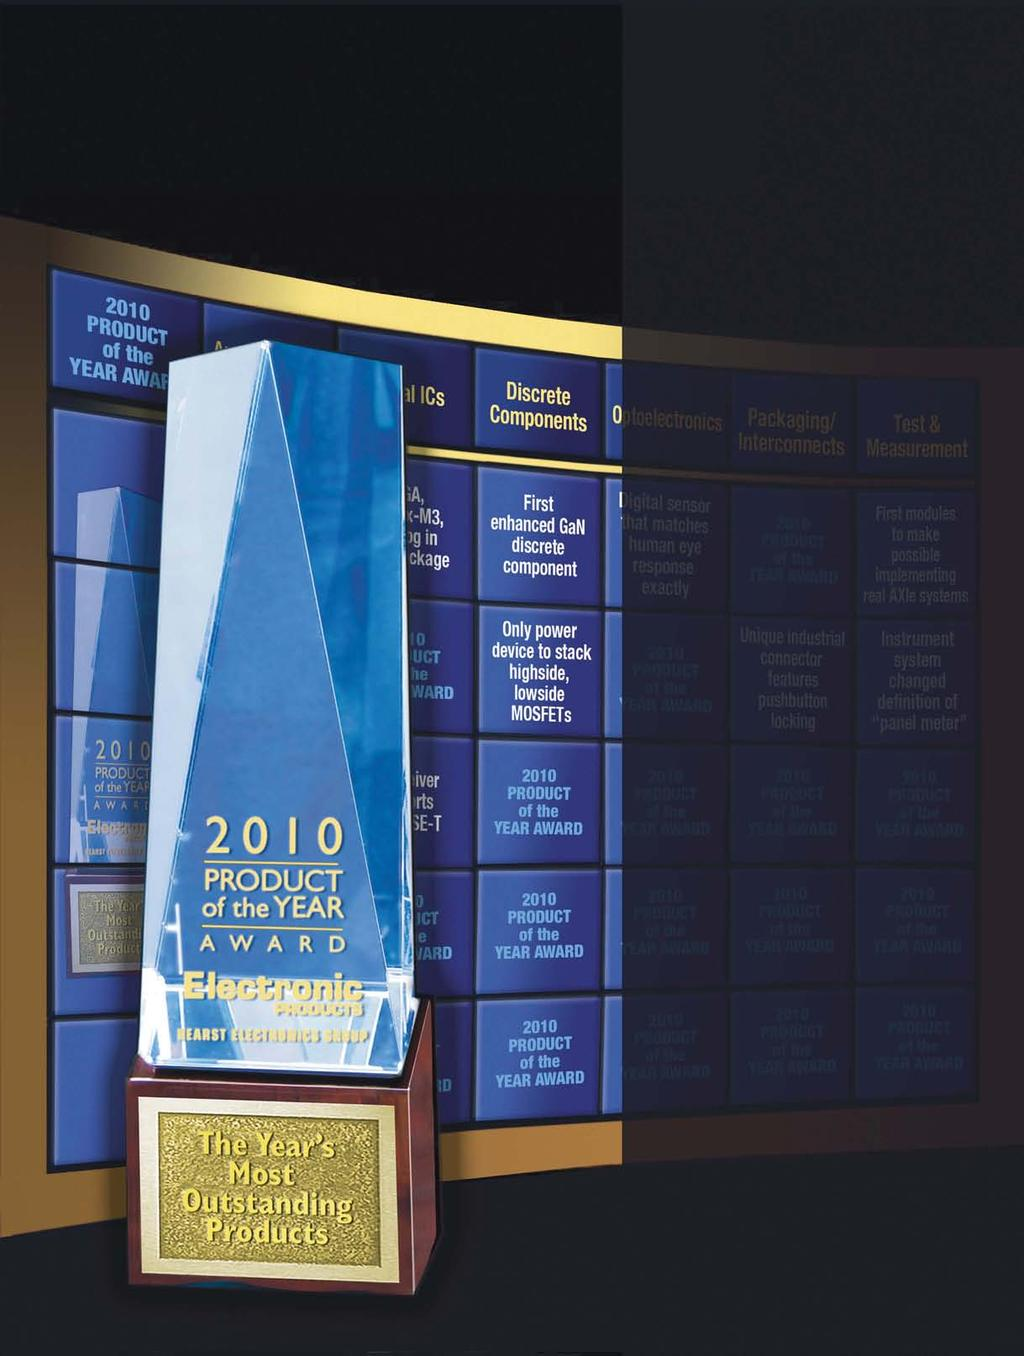 Lect Ronic 35th Annual Products Product Of The Year Awards P33 No Koa Speer Electronics Your Passive Component Partner Elect Electronicproducts